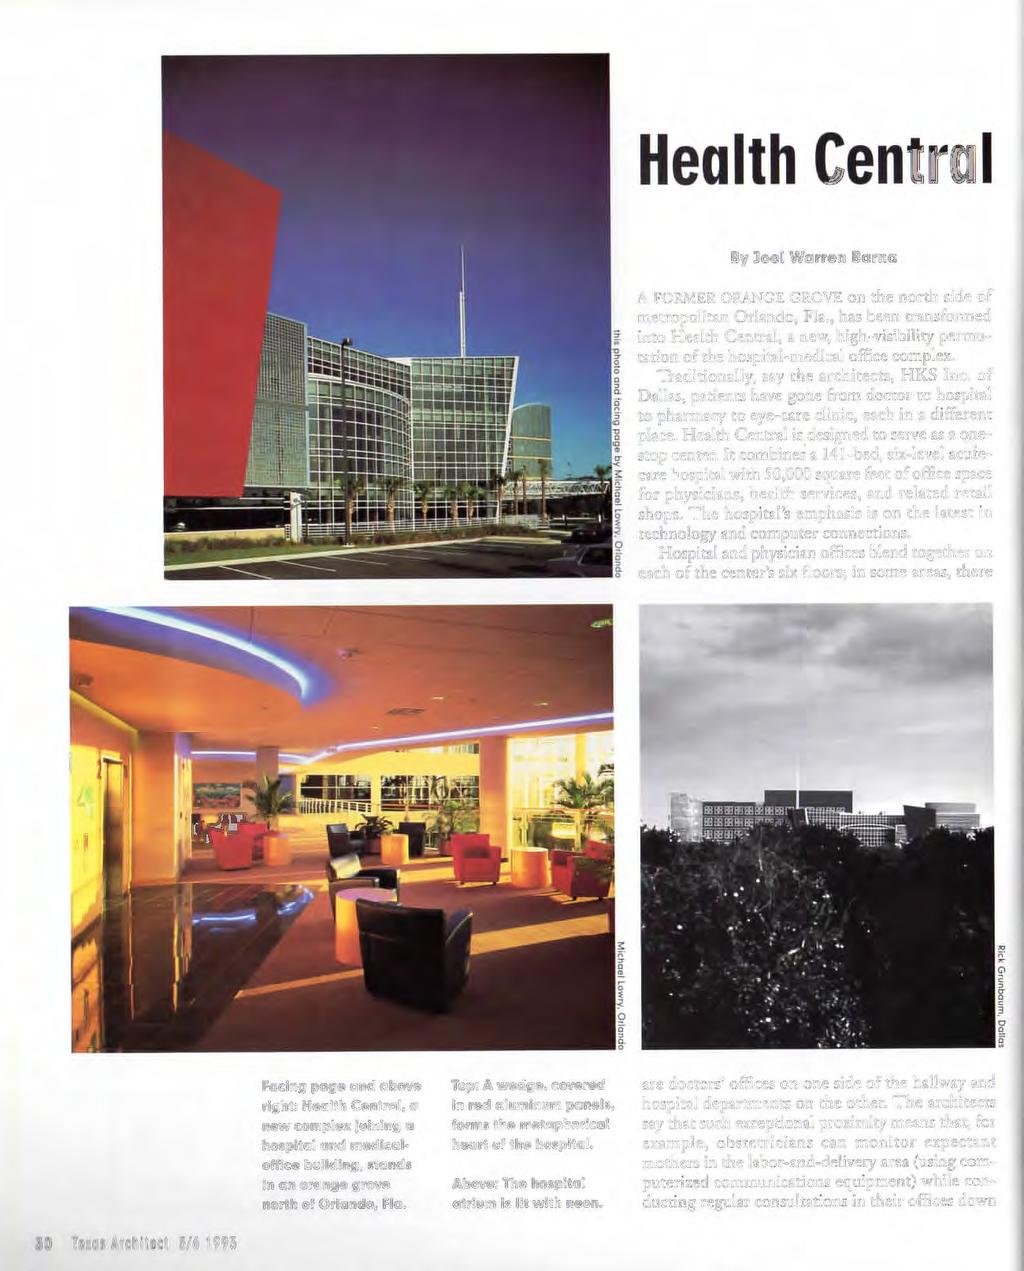 Health Centra By loel Warren Barna.\ FOR,\l l~r ORANC F GR0\1 : on the north side or metrop olitan Orhrndo. Fla.